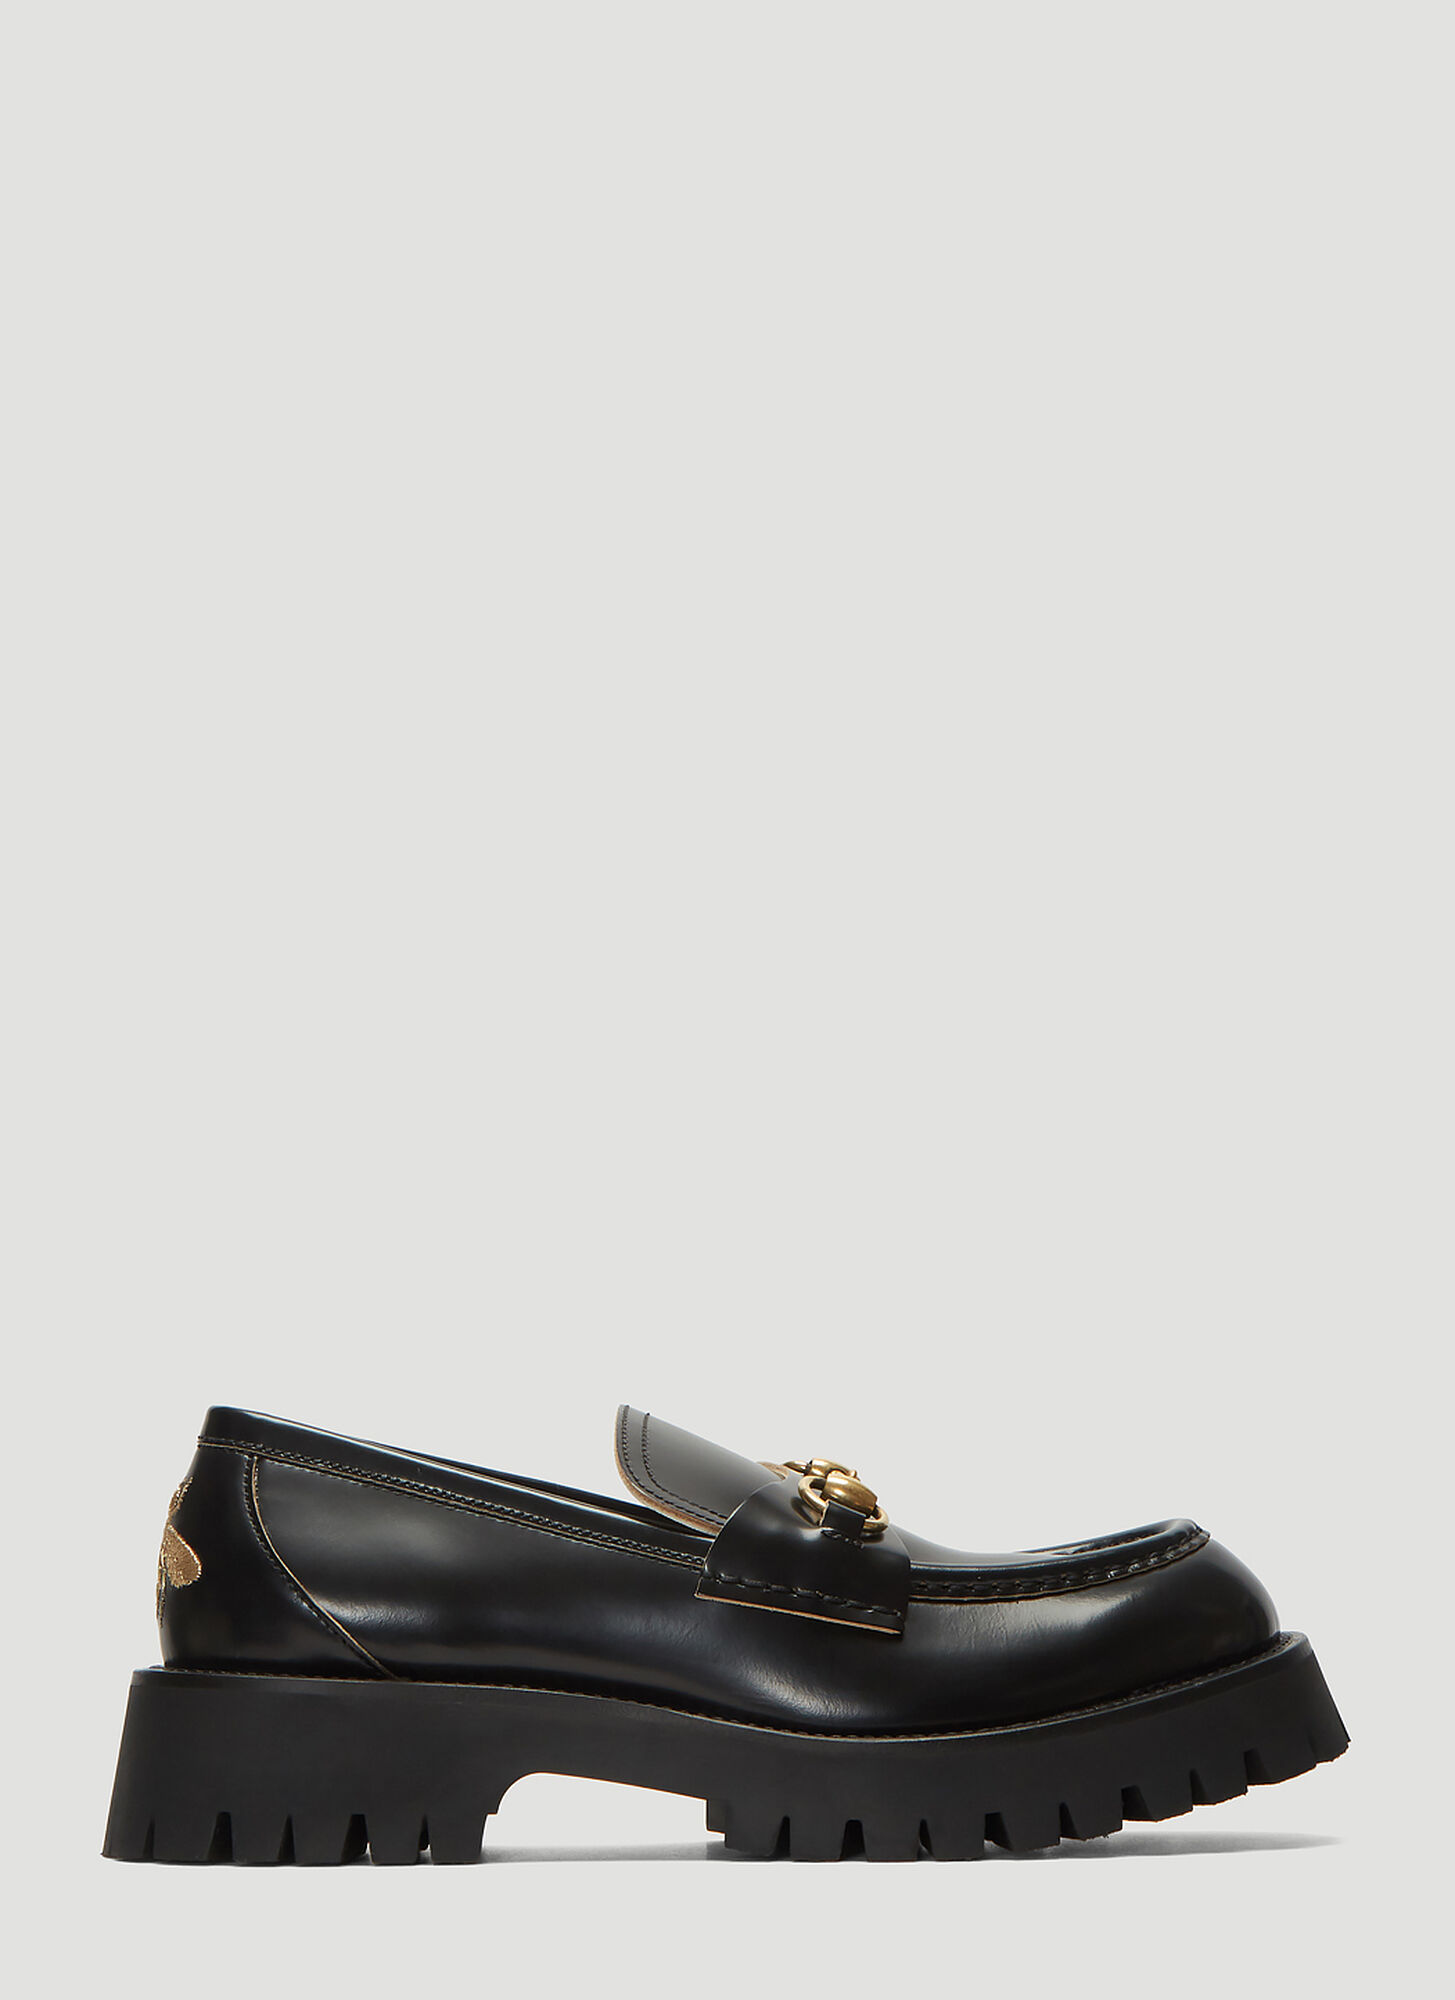 Photo of Gucci Chunky Lug Sole Loafers in Black - Gucci Flats